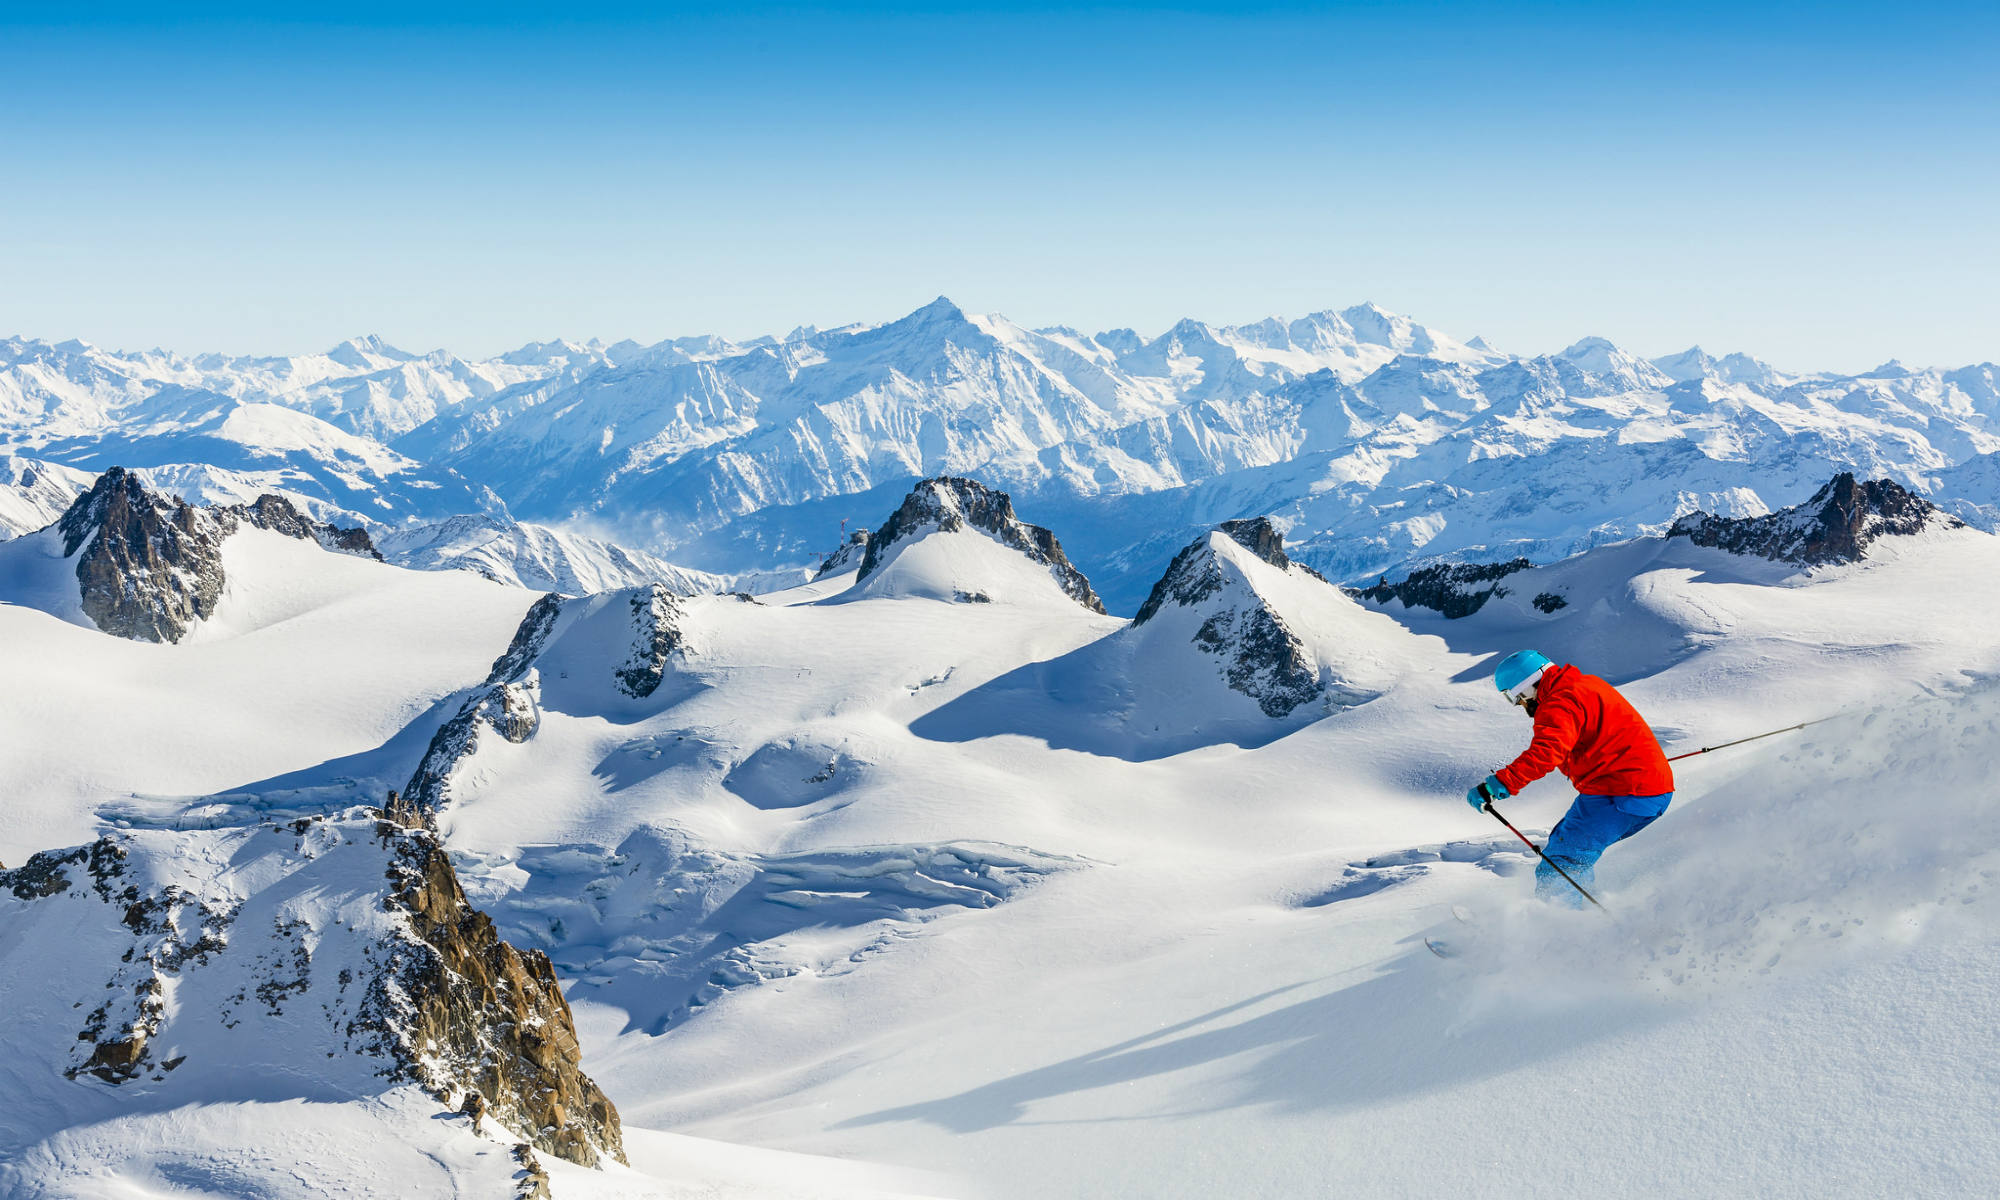 A skier enjoying untouched off-piste terrain, high up the mountains in Chamonix.